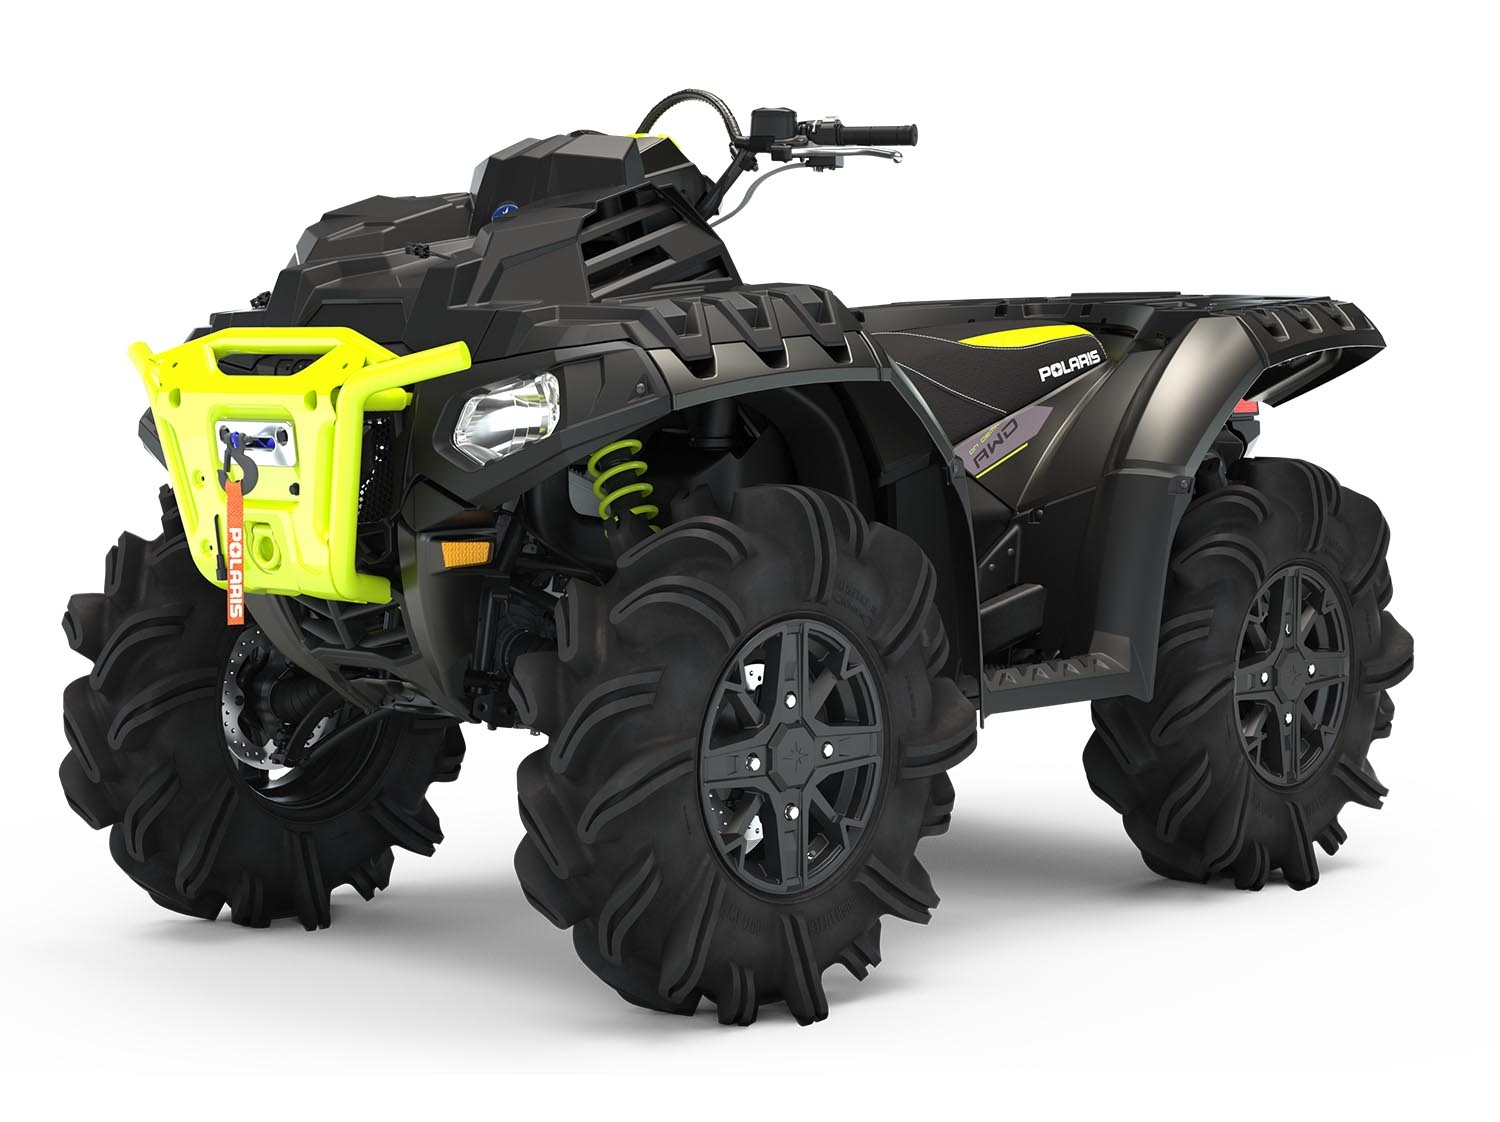 2020-sportsman-xp-1000-high-lifter-onyx-black_1